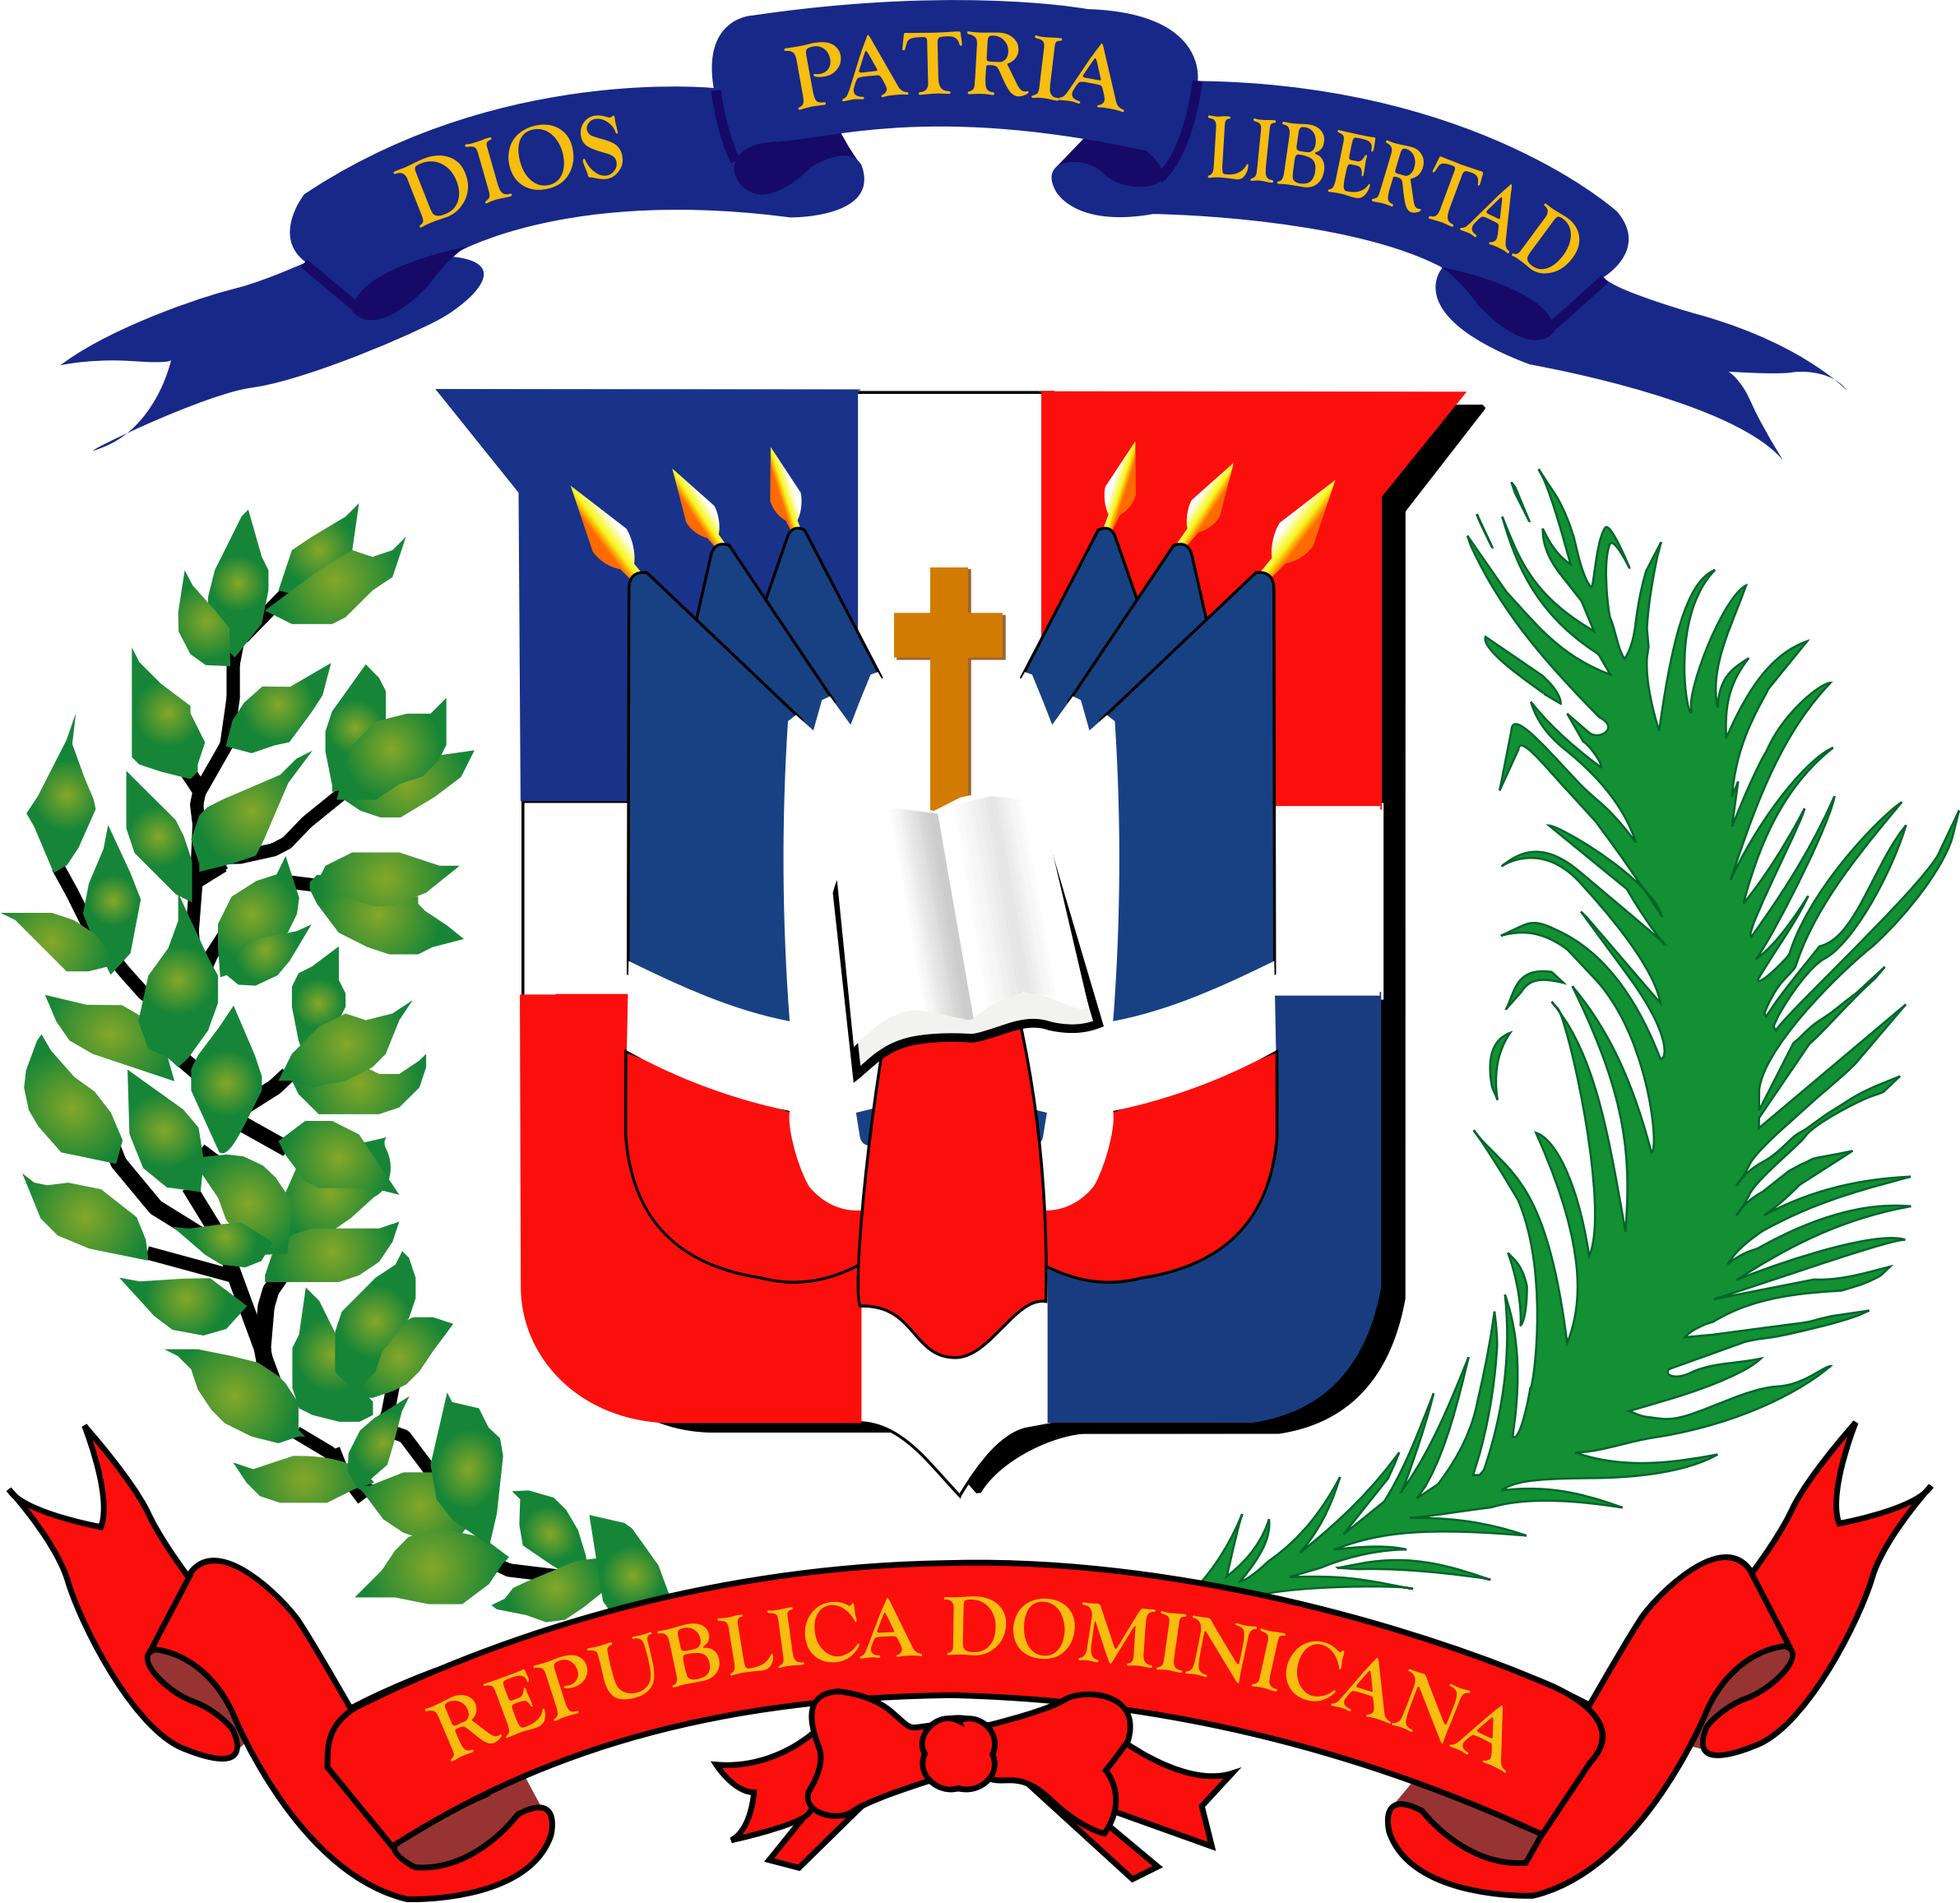 Escudo Nacional Dominicano by capellan2000